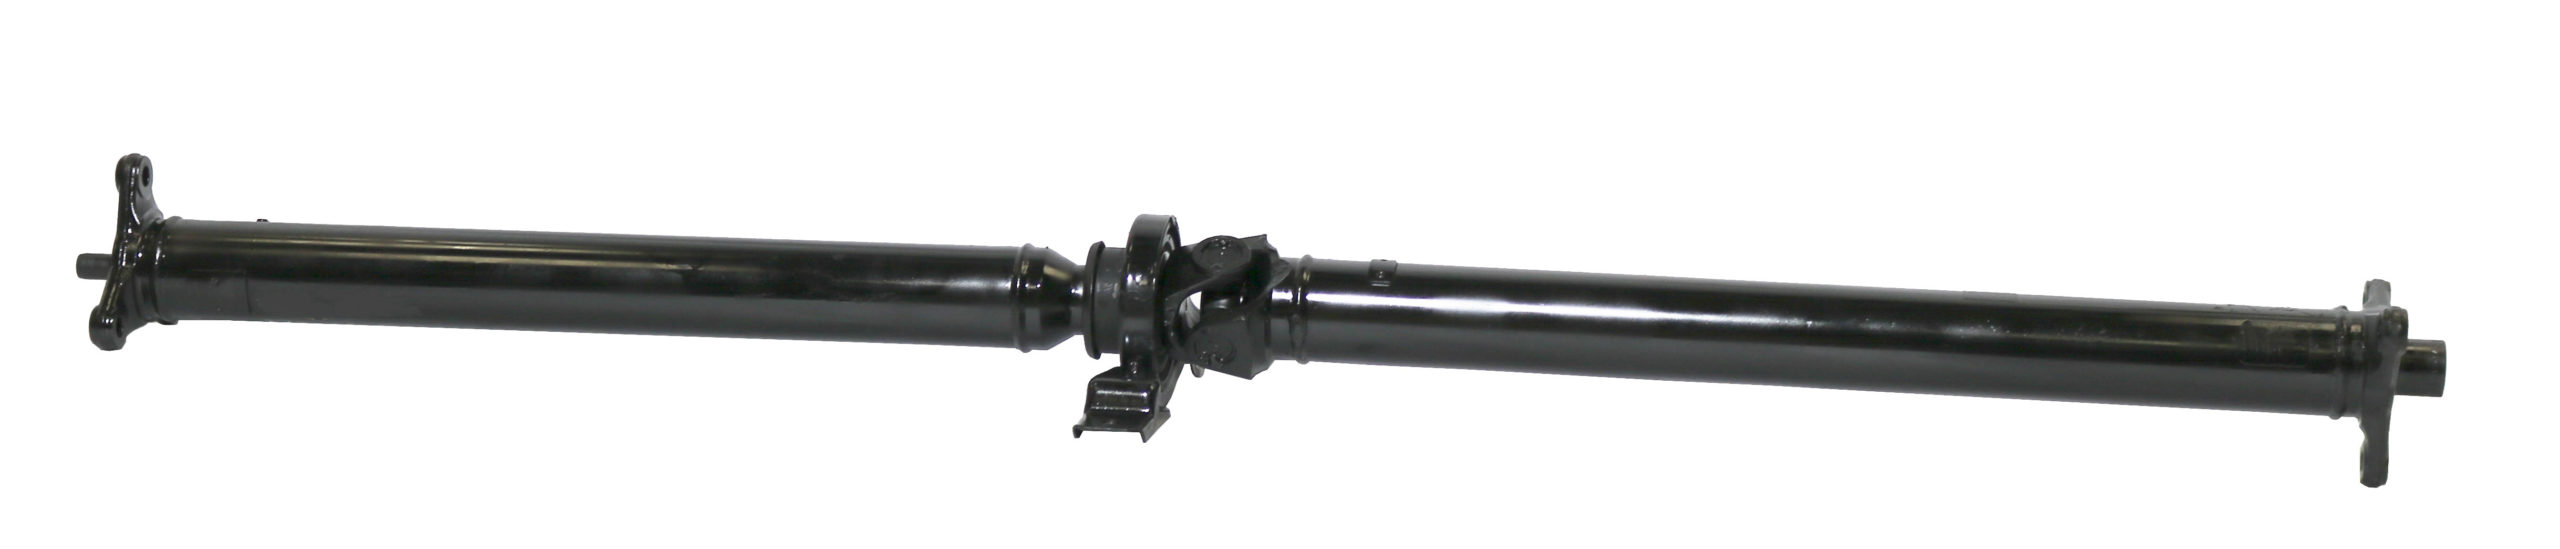 Pontiac GTO rear drive shaft.